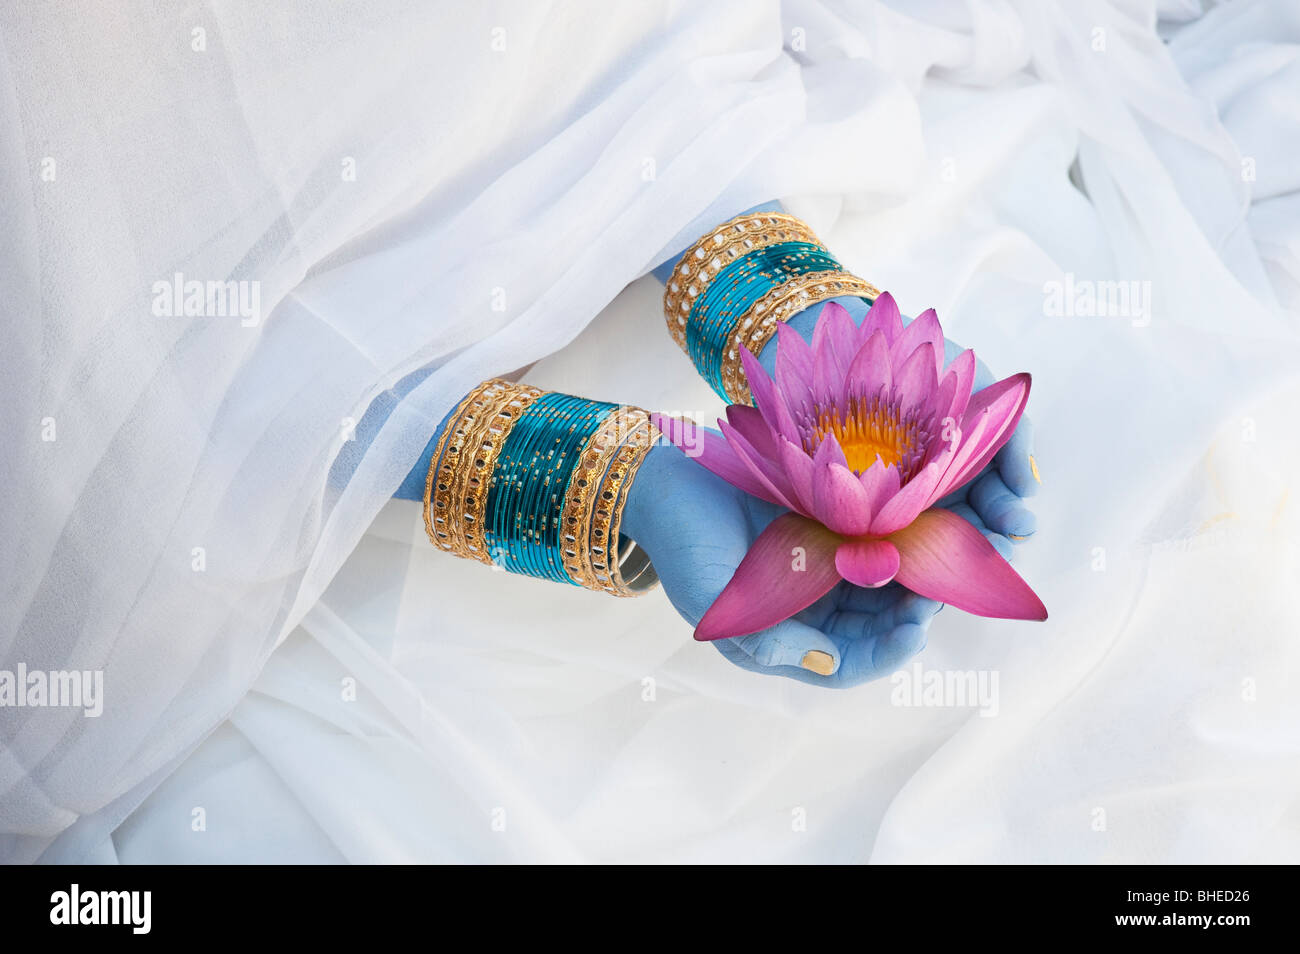 Indian girl offering a Nymphaea, Tropical waterlily flower with blue